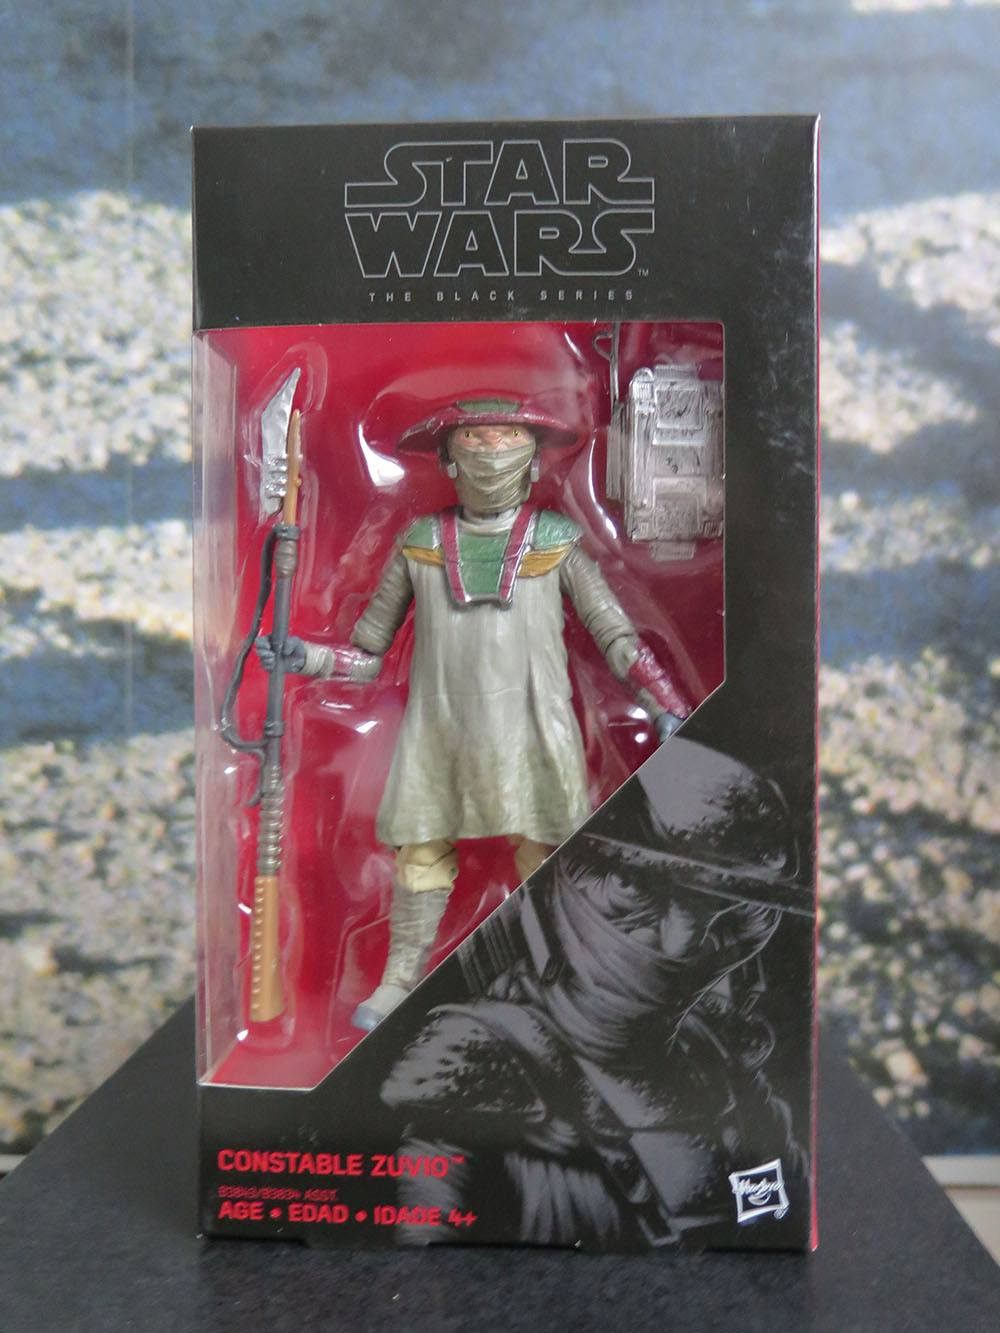 Black Series - Zuvio